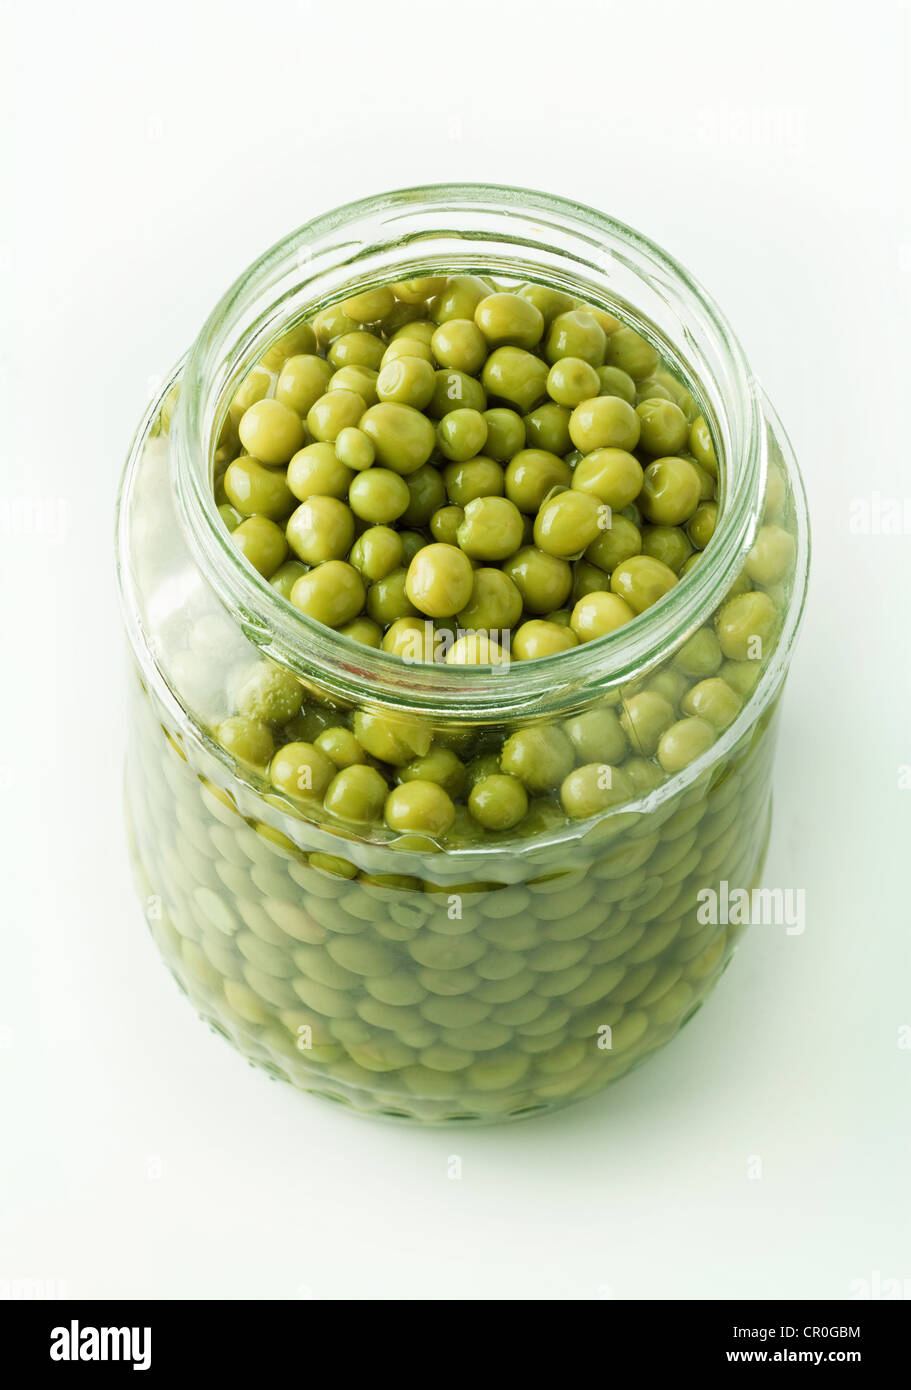 Opened jar of preserved green peas - Stock Image